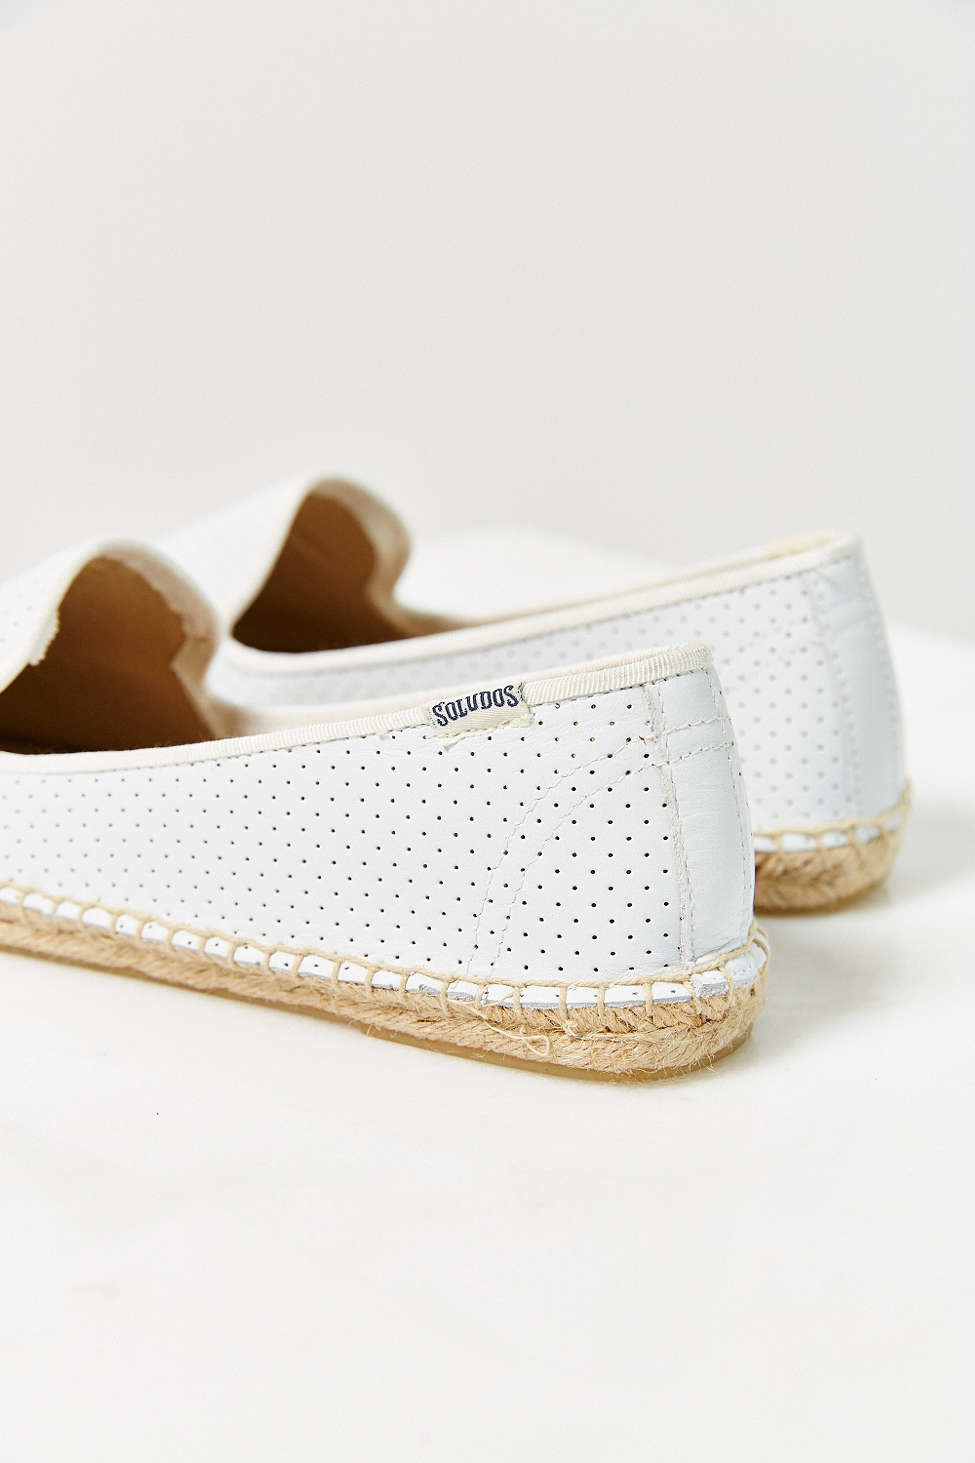 19b001ffc Soludos Perforated Leather Espadrille Loafer in White - Lyst